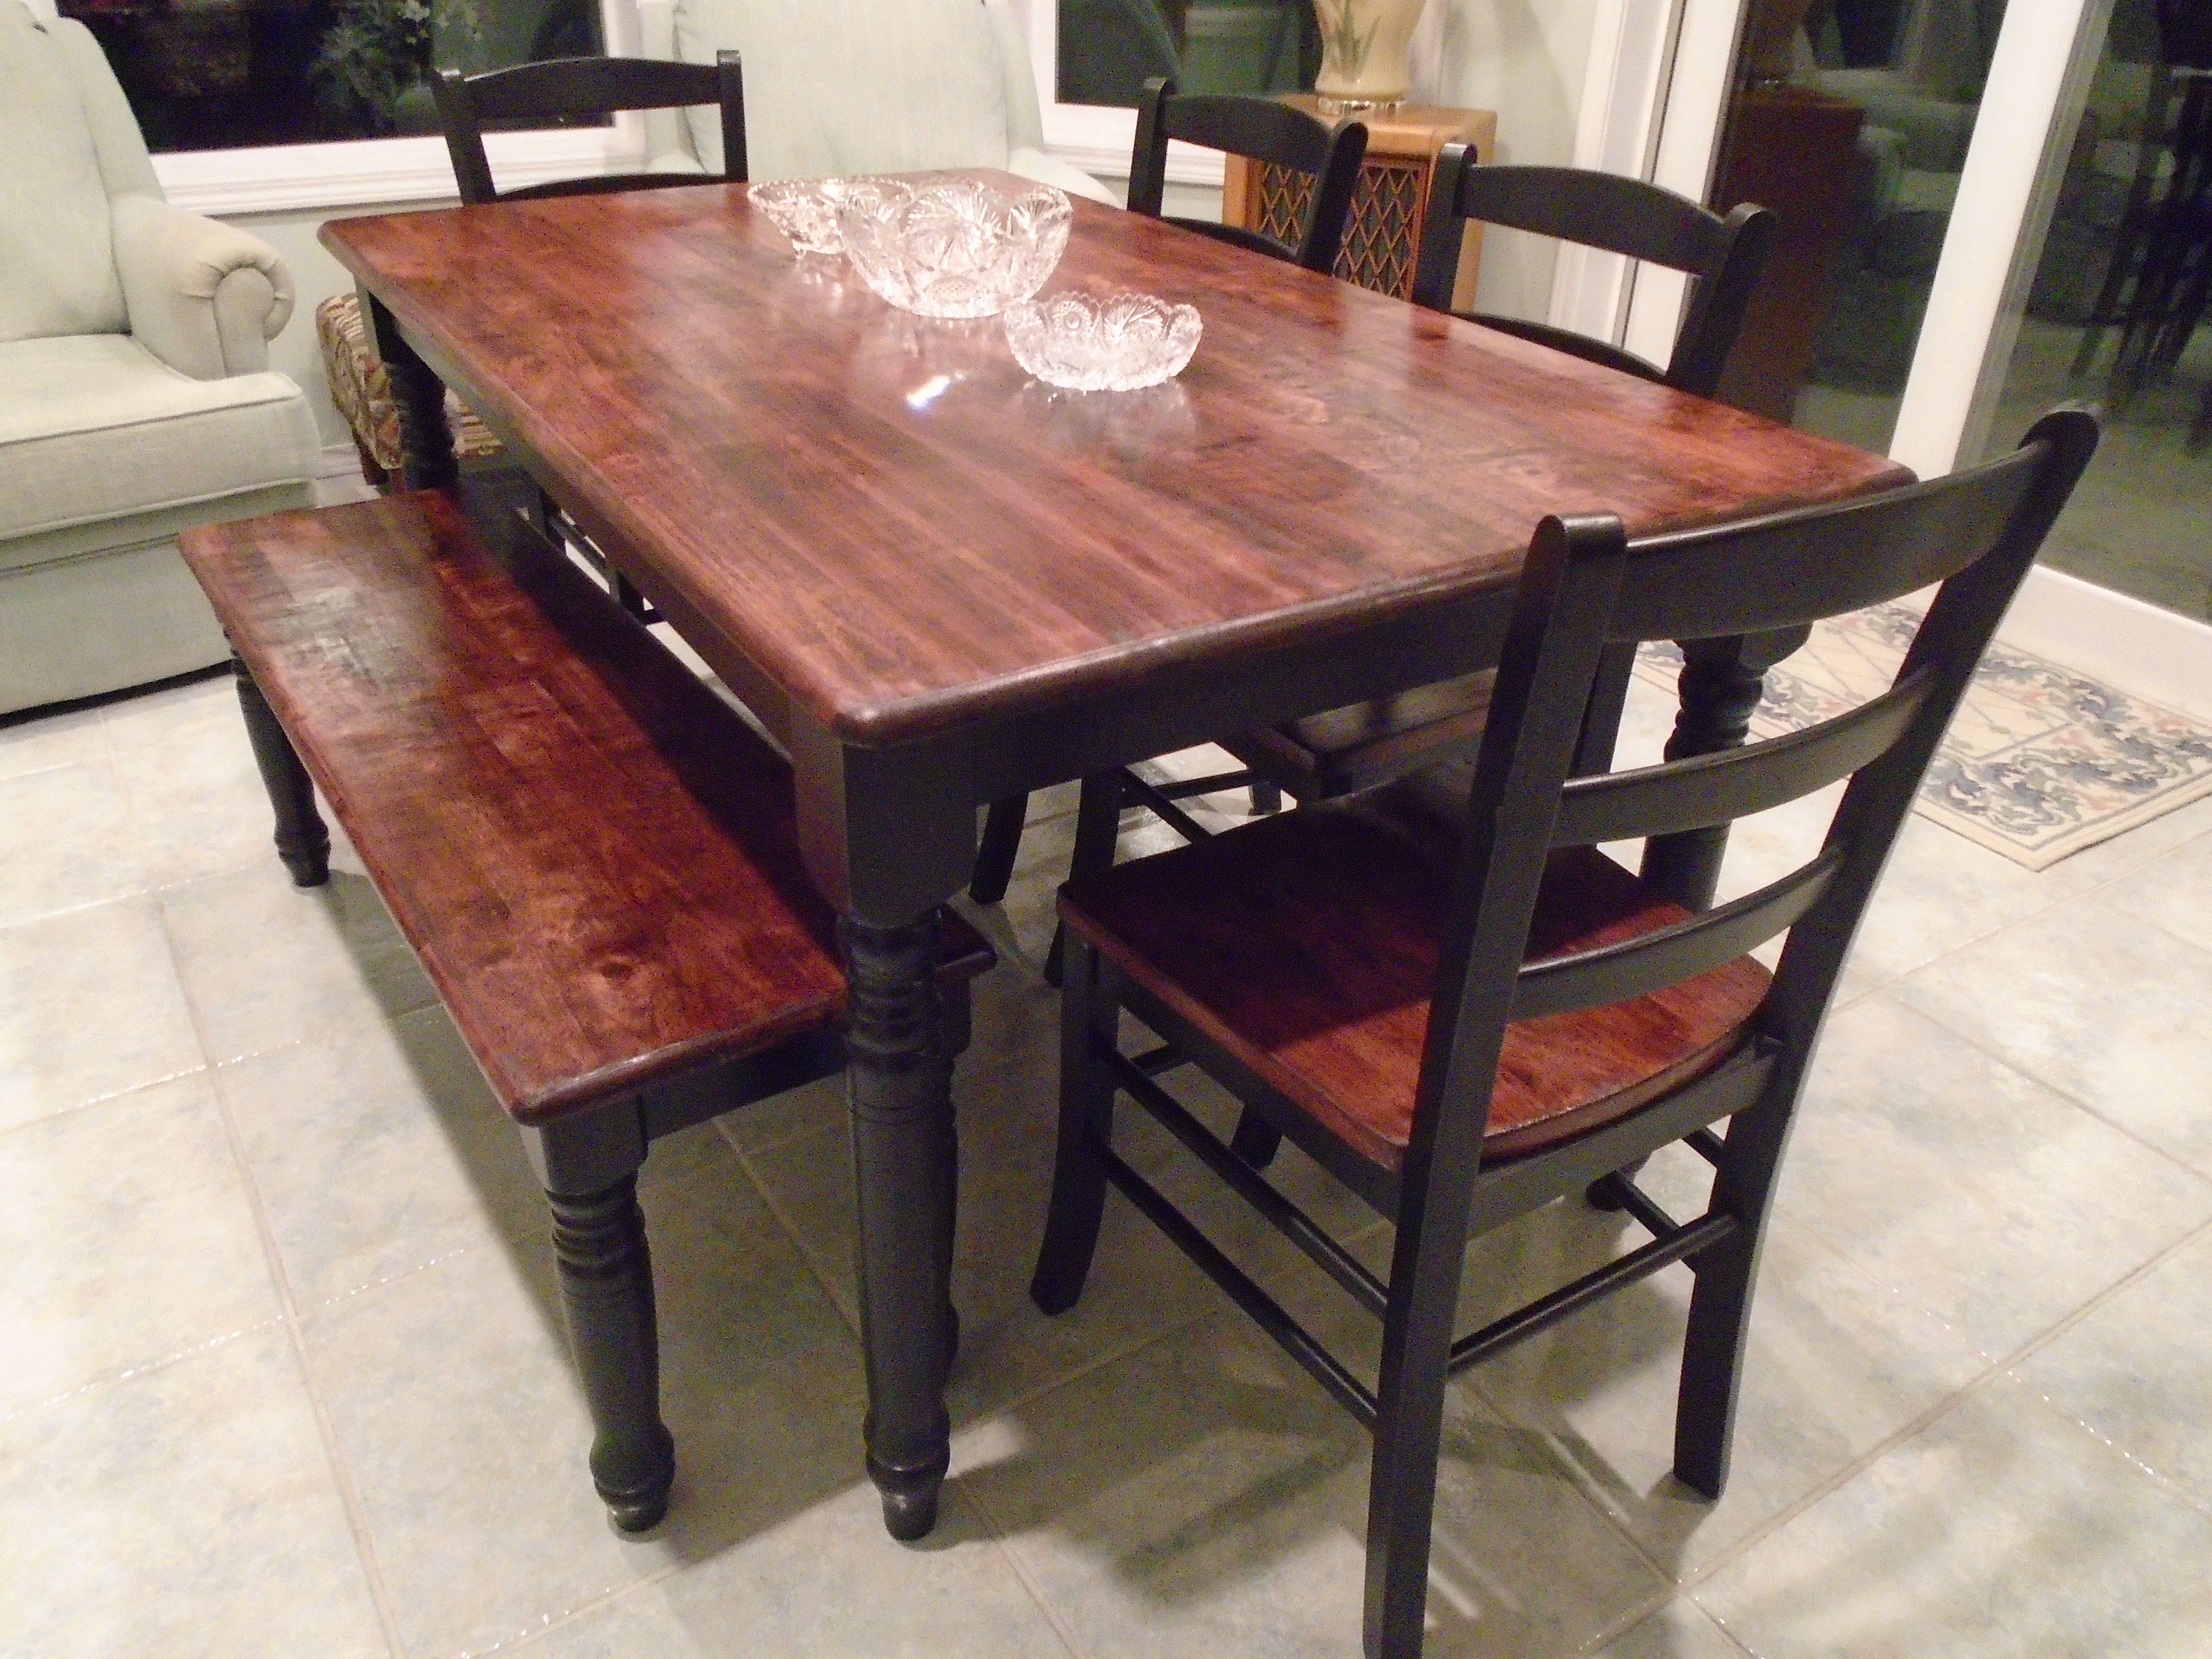 Rustic Farmhouse Table Brown Stained Top Black Painted Legs 4